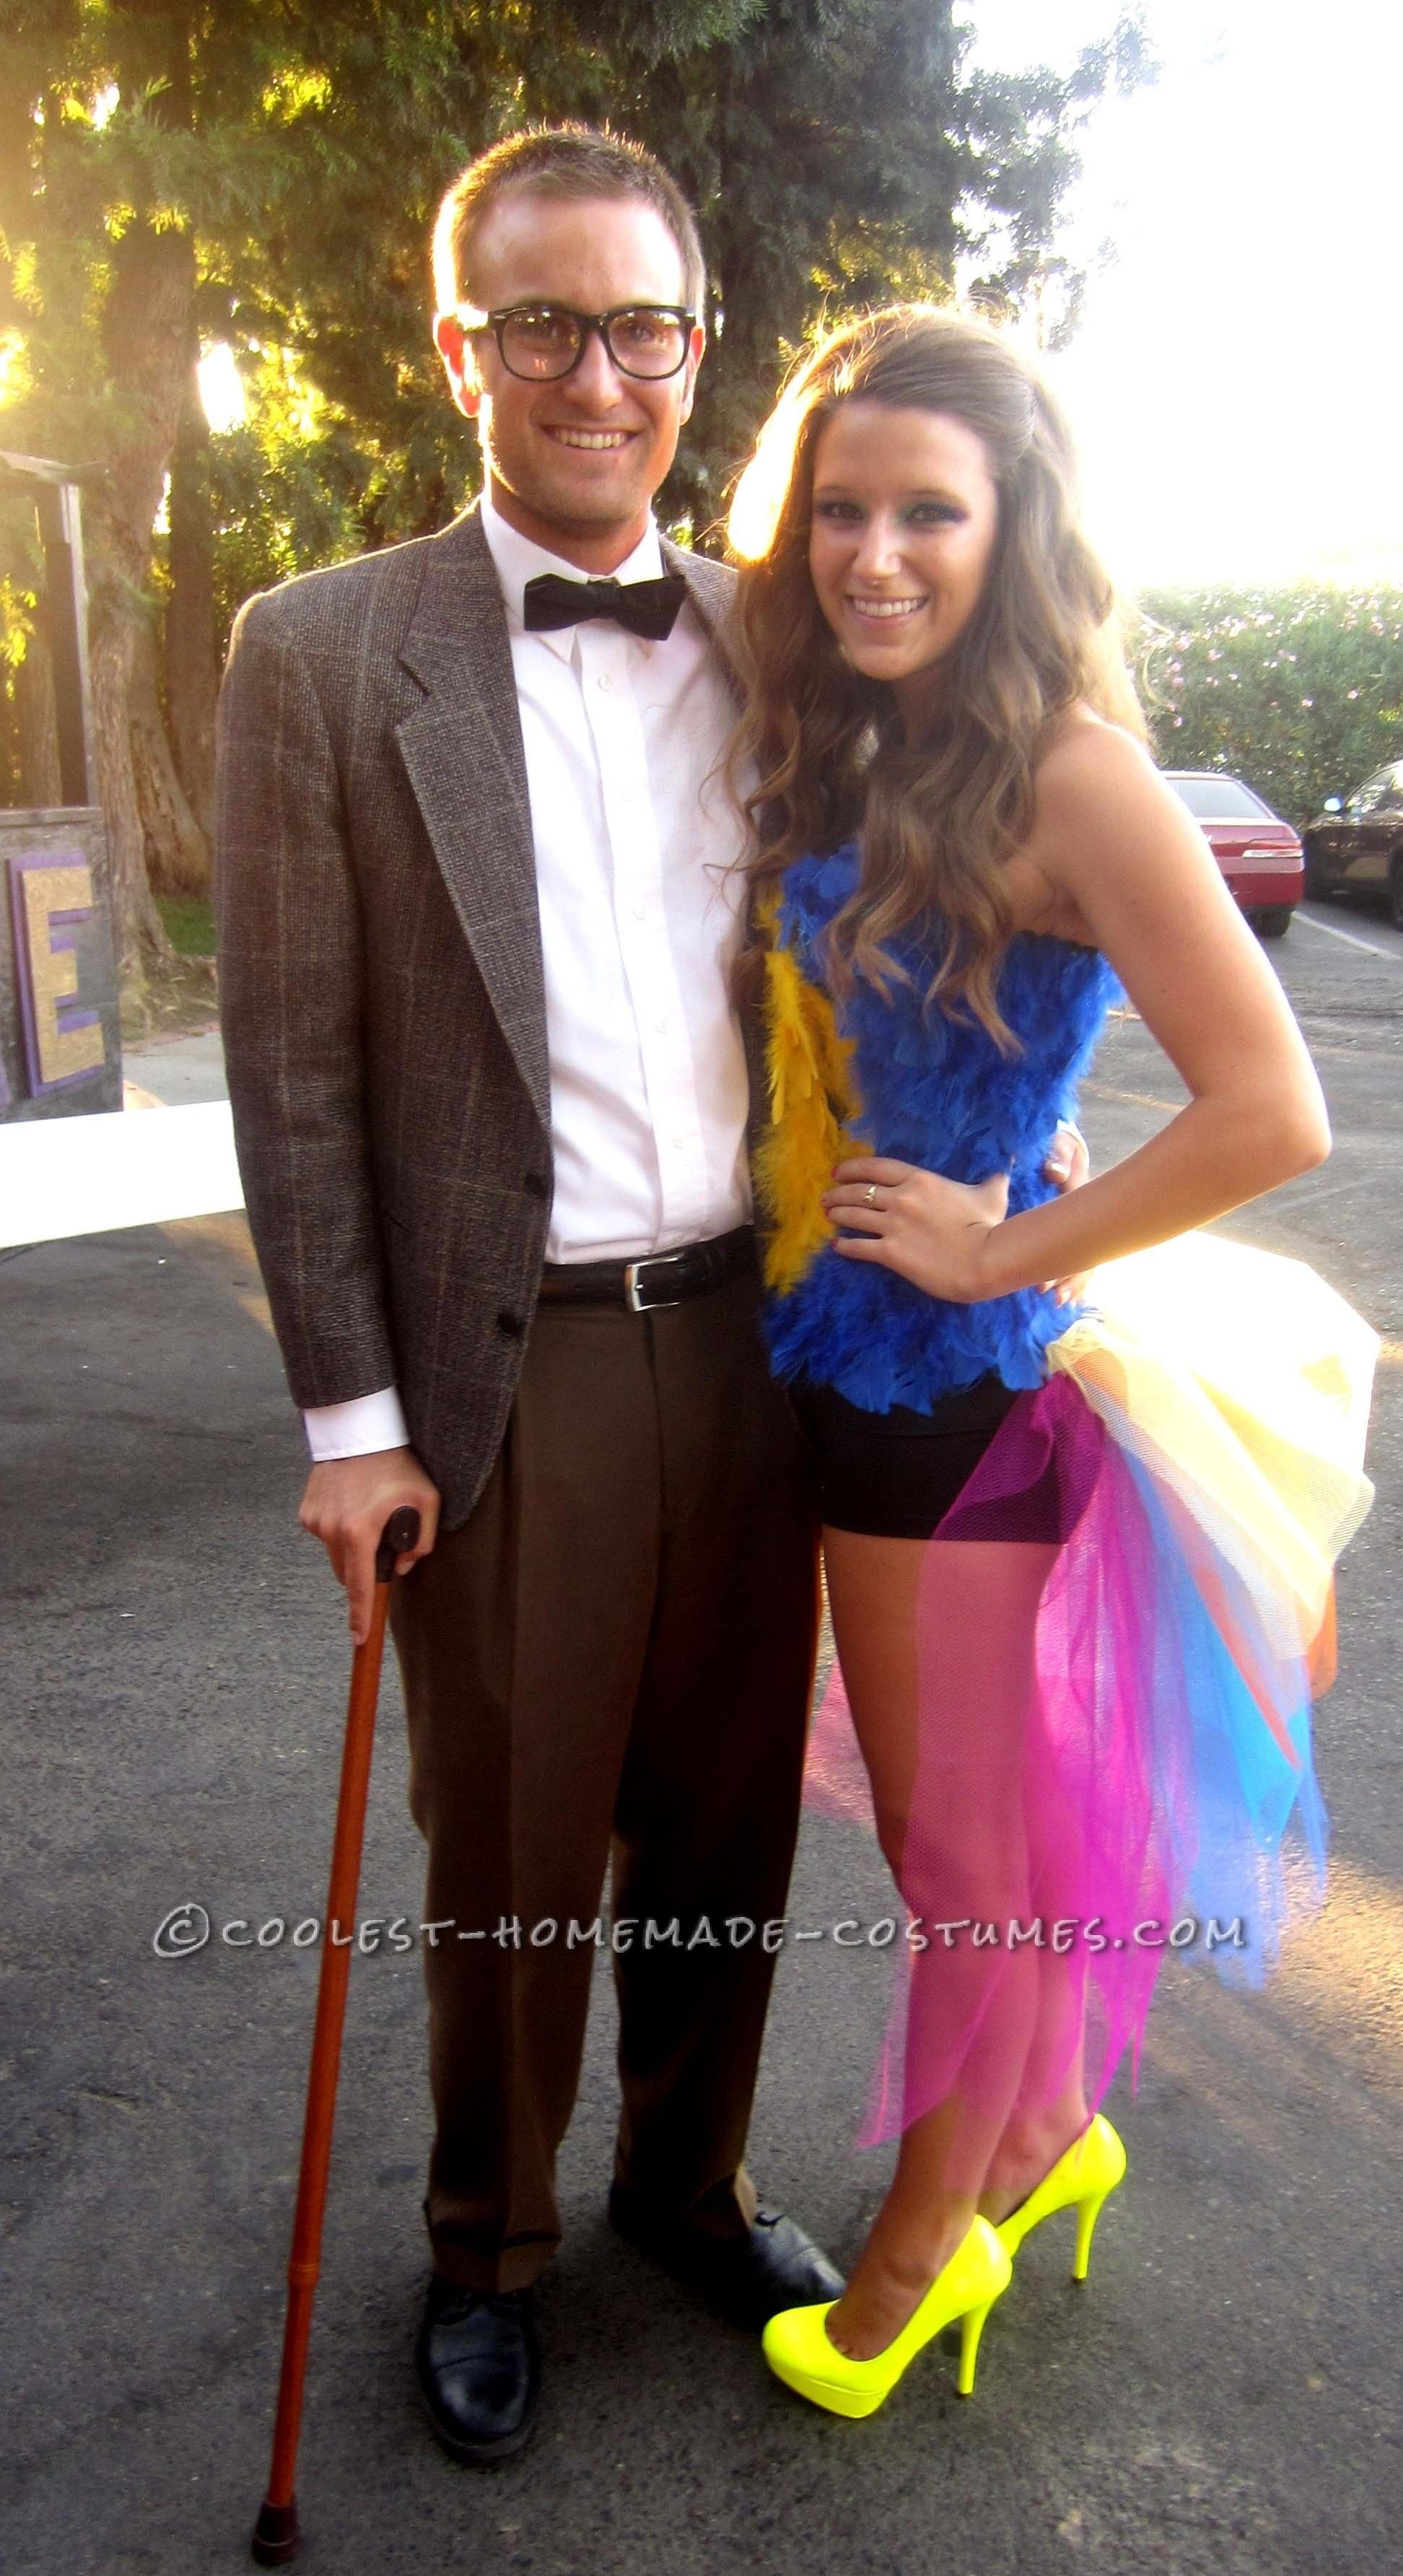 10 Amazing Great Costume Ideas For Couples great couple costume idea kevin and carl from up couple costume 1